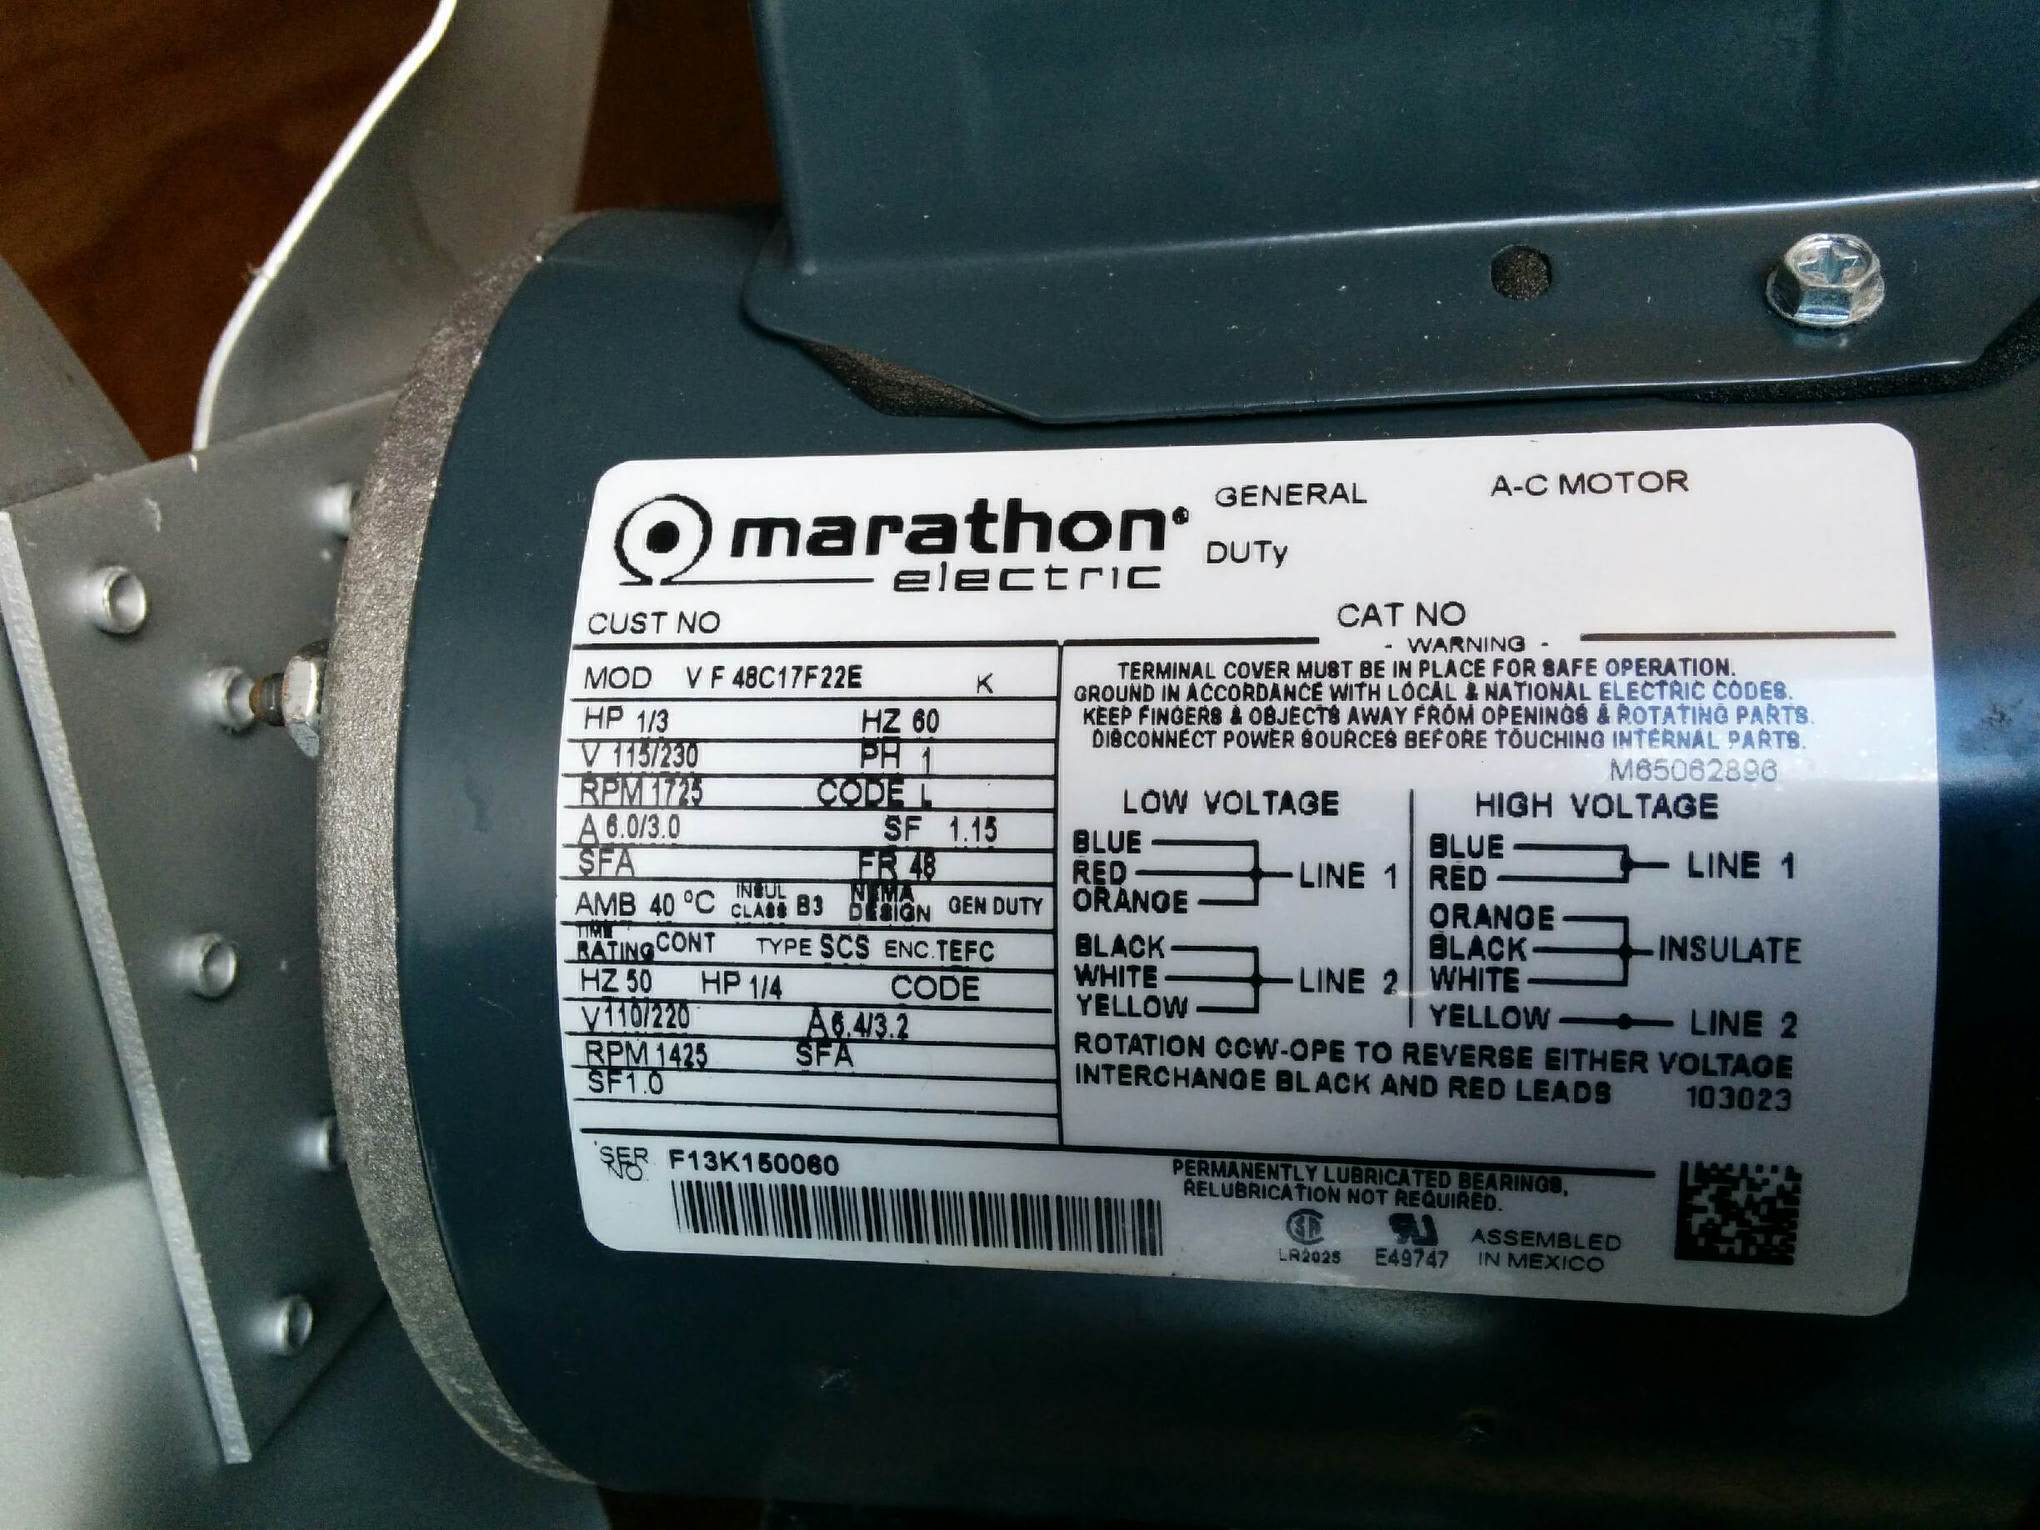 i a marathon electric motor 1 3 hp i m trying to understand a of things 1 line